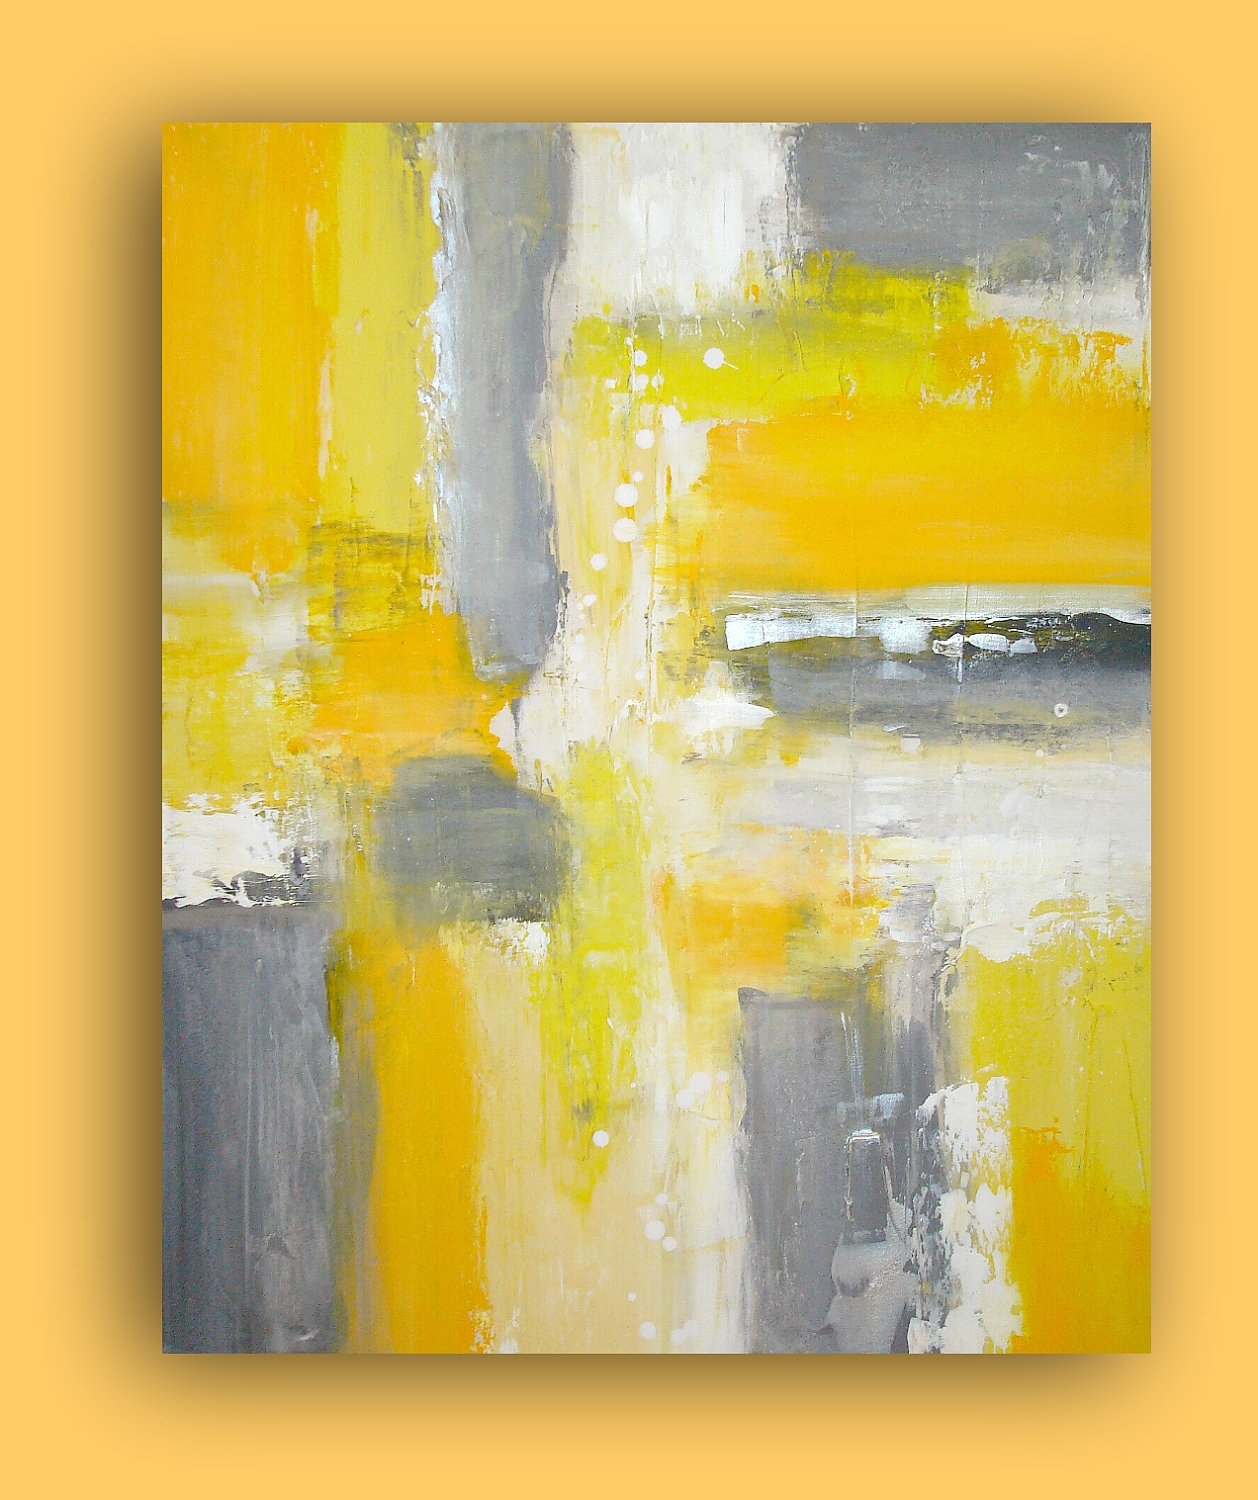 Art Original Yellow And Gray Acrylic Painting On Gallery Canvas Inside Current Yellow And Grey Abstract Wall Art (View 3 of 20)